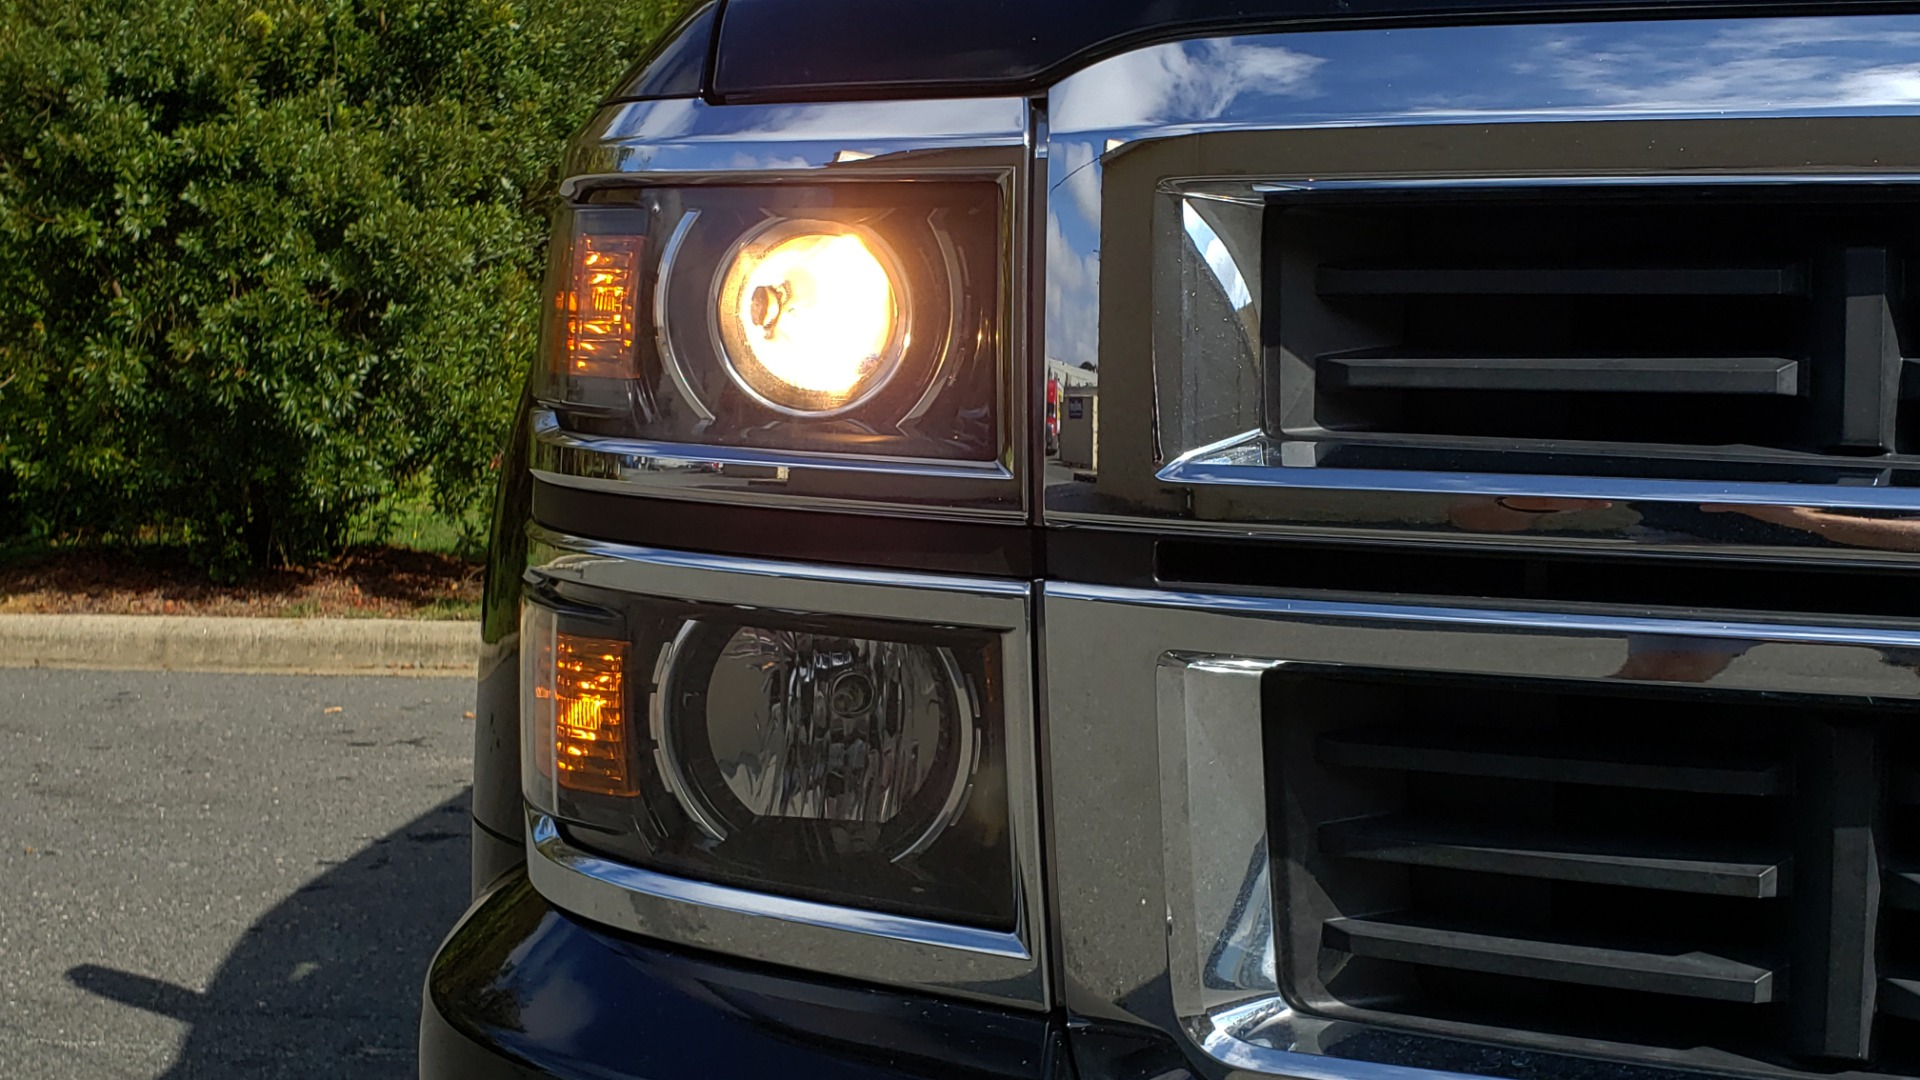 Used 2014 Chevrolet SILVERADO 1500 CREWCAB / LTZ PLUS PKG / 4WD / 2LZ / NAV / BOSE / REARVIEW for sale Sold at Formula Imports in Charlotte NC 28227 16